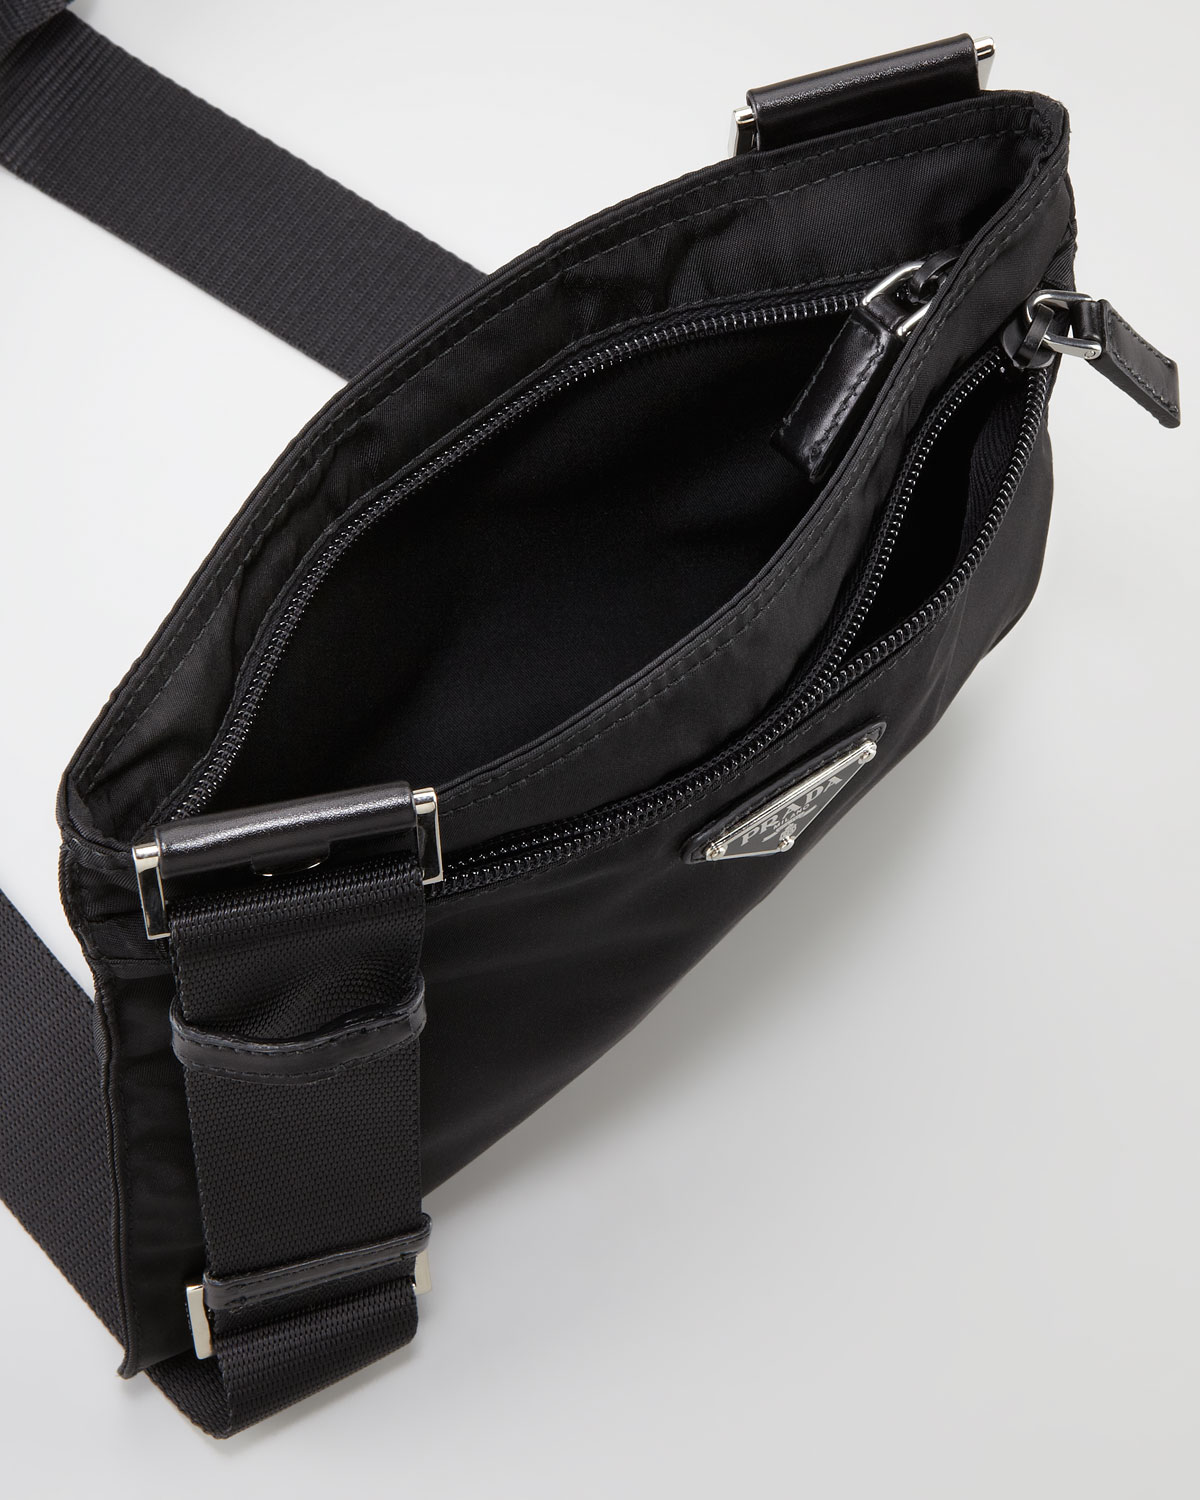 prada vela crossbody messenger bag black